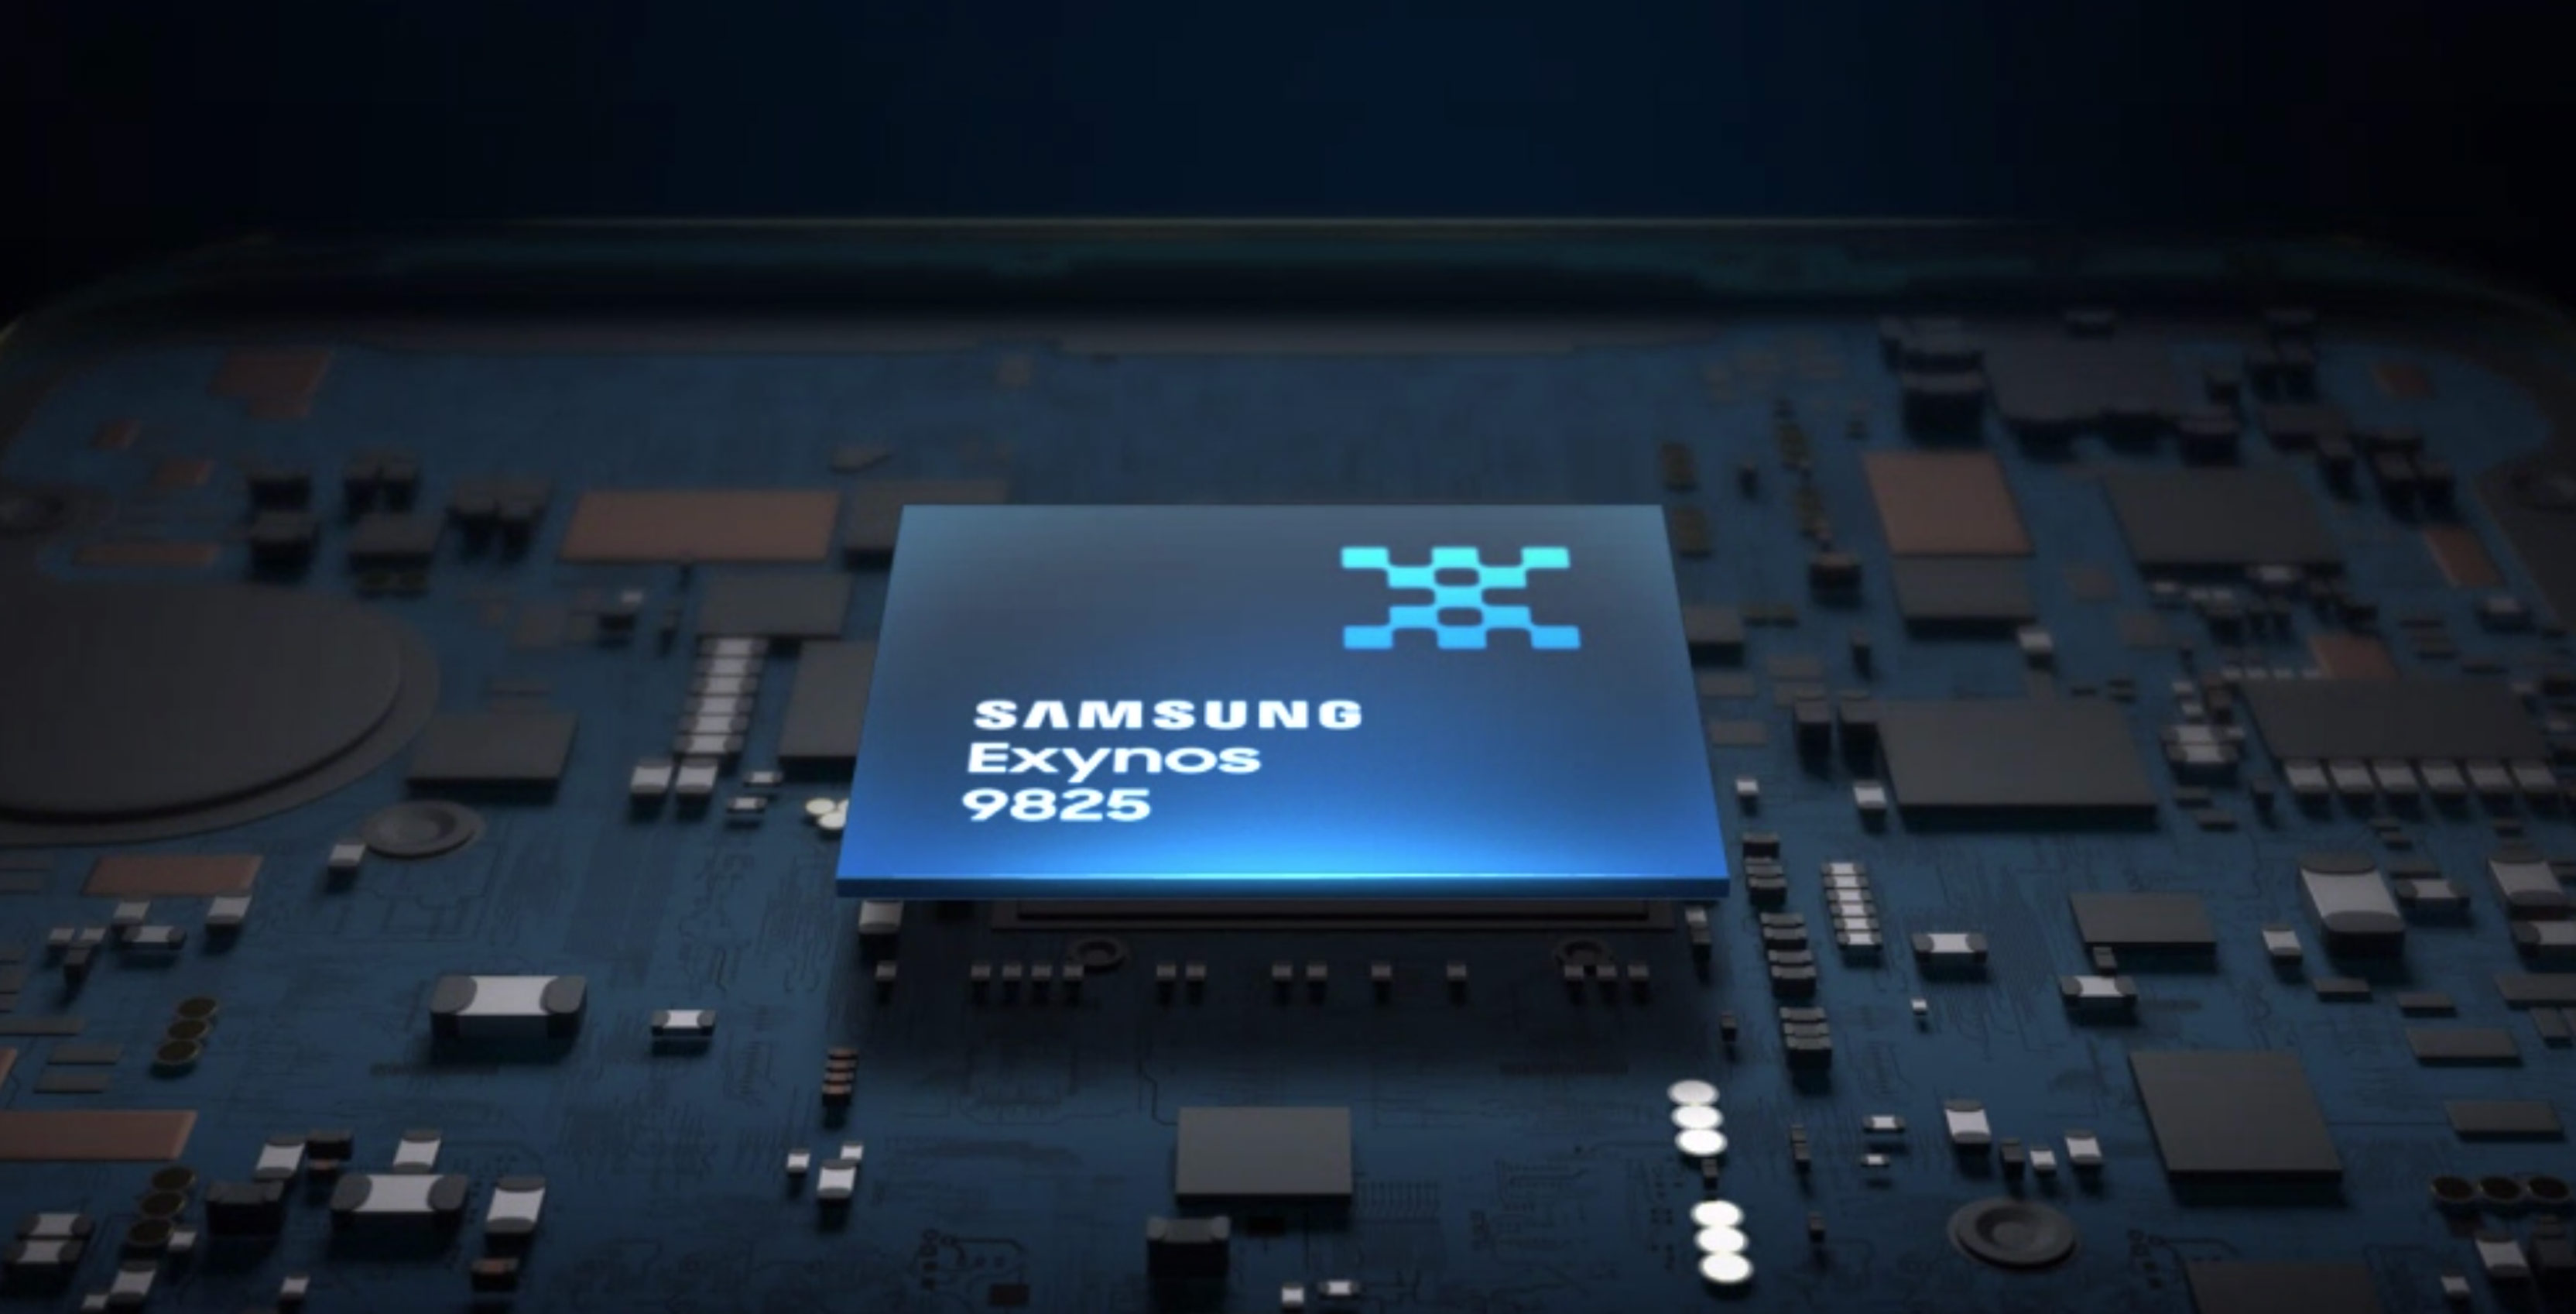 Samsung's new Exynos 9825 chipset